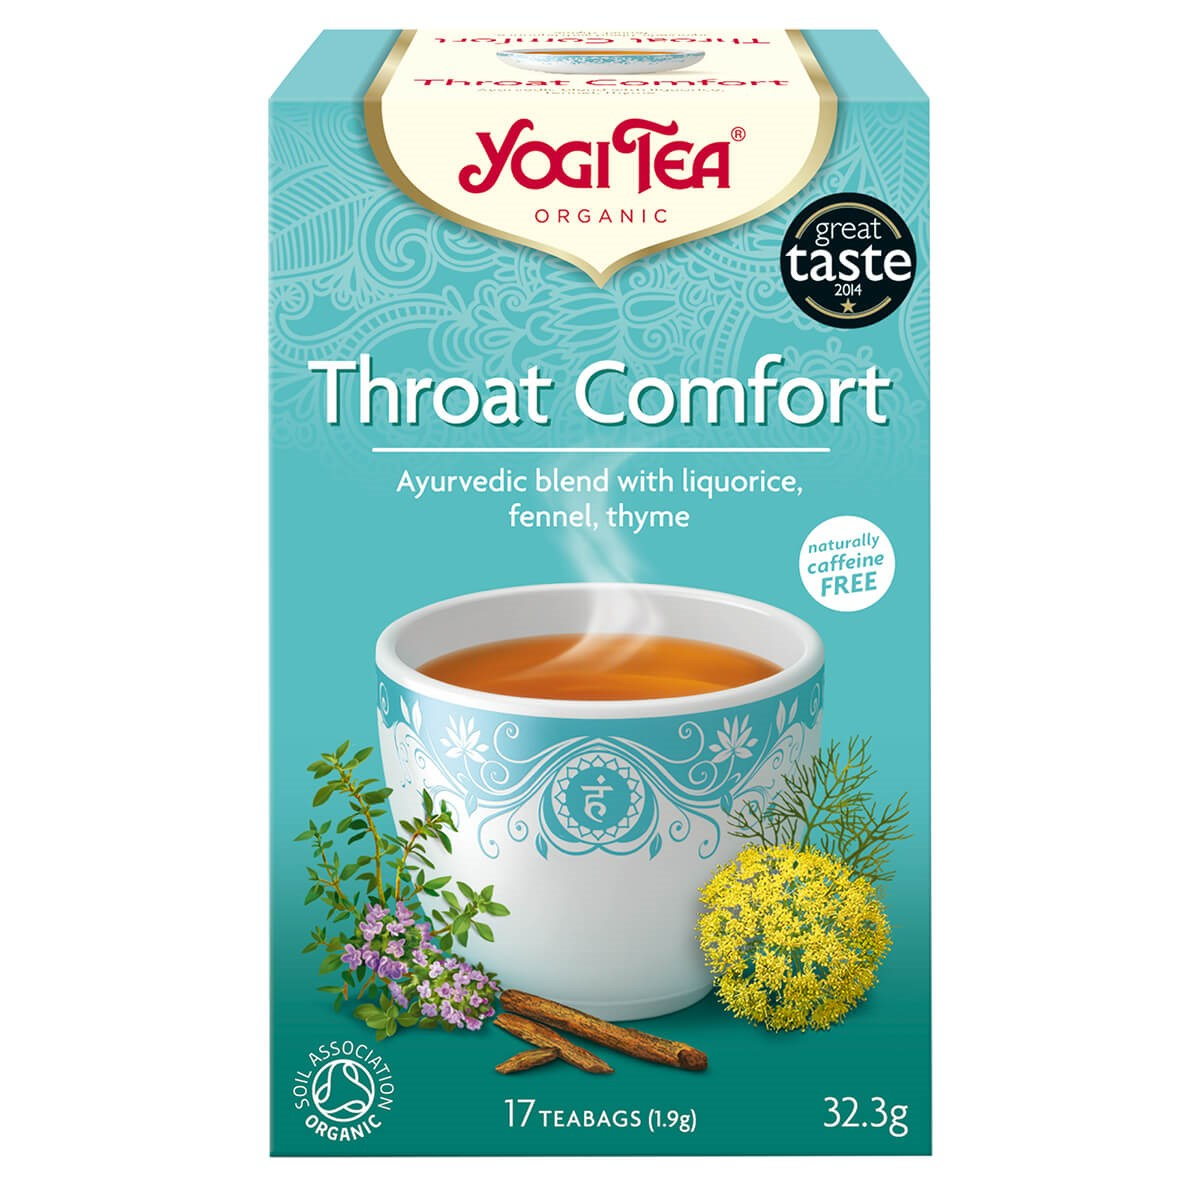 Yogi Tea Organic Throat Comfort Tea